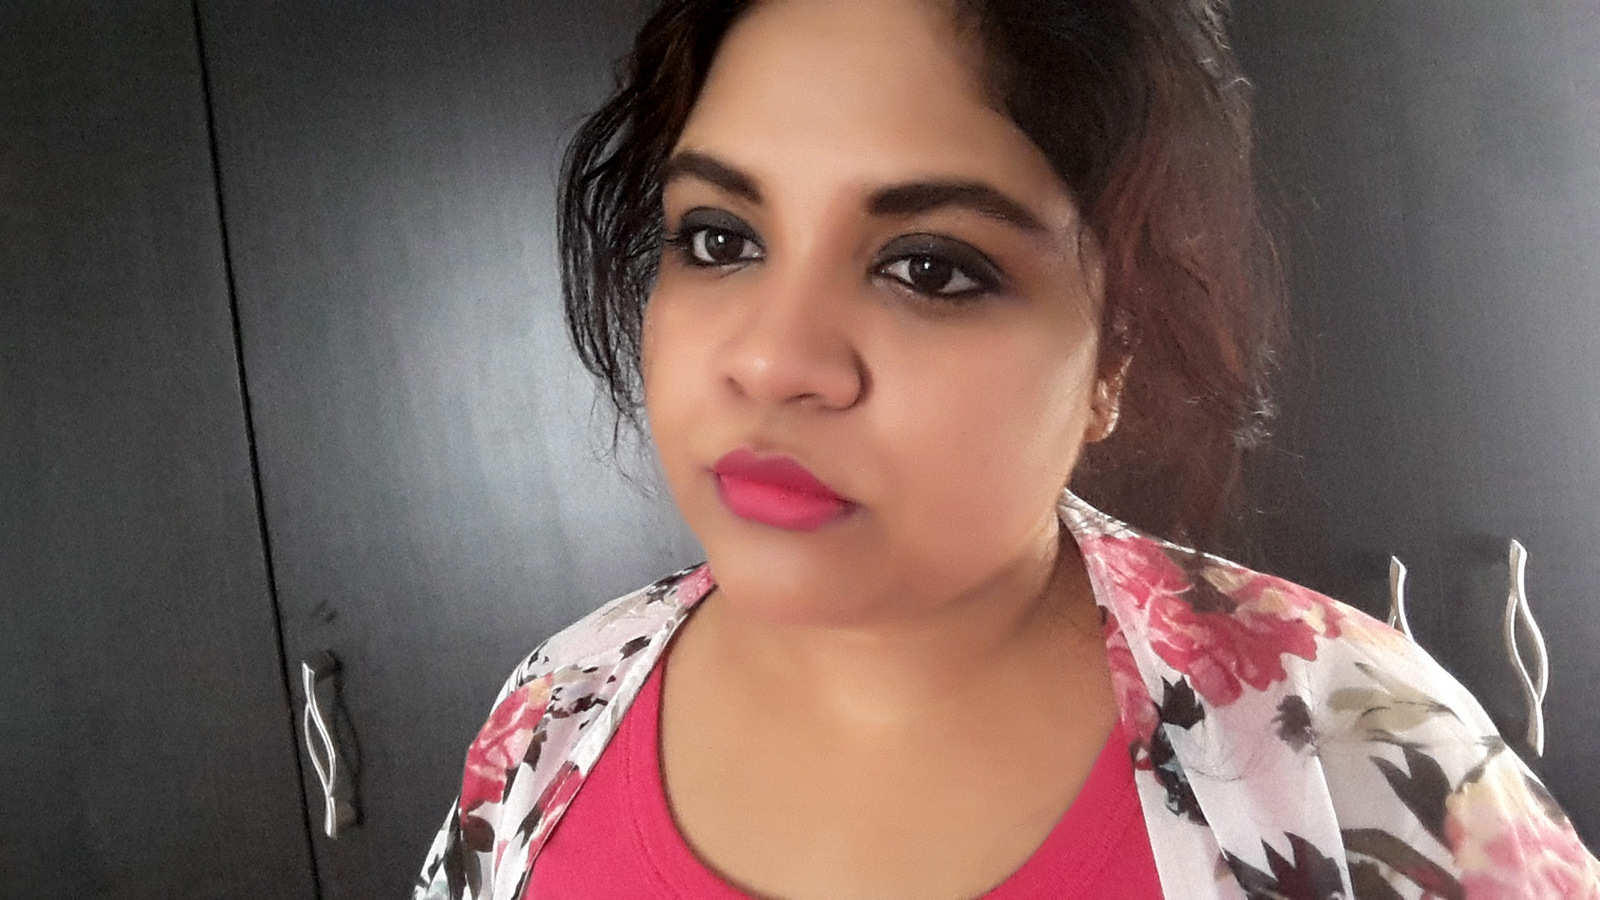 Lakme Absolute Matte Lipstick in Pink Me Up